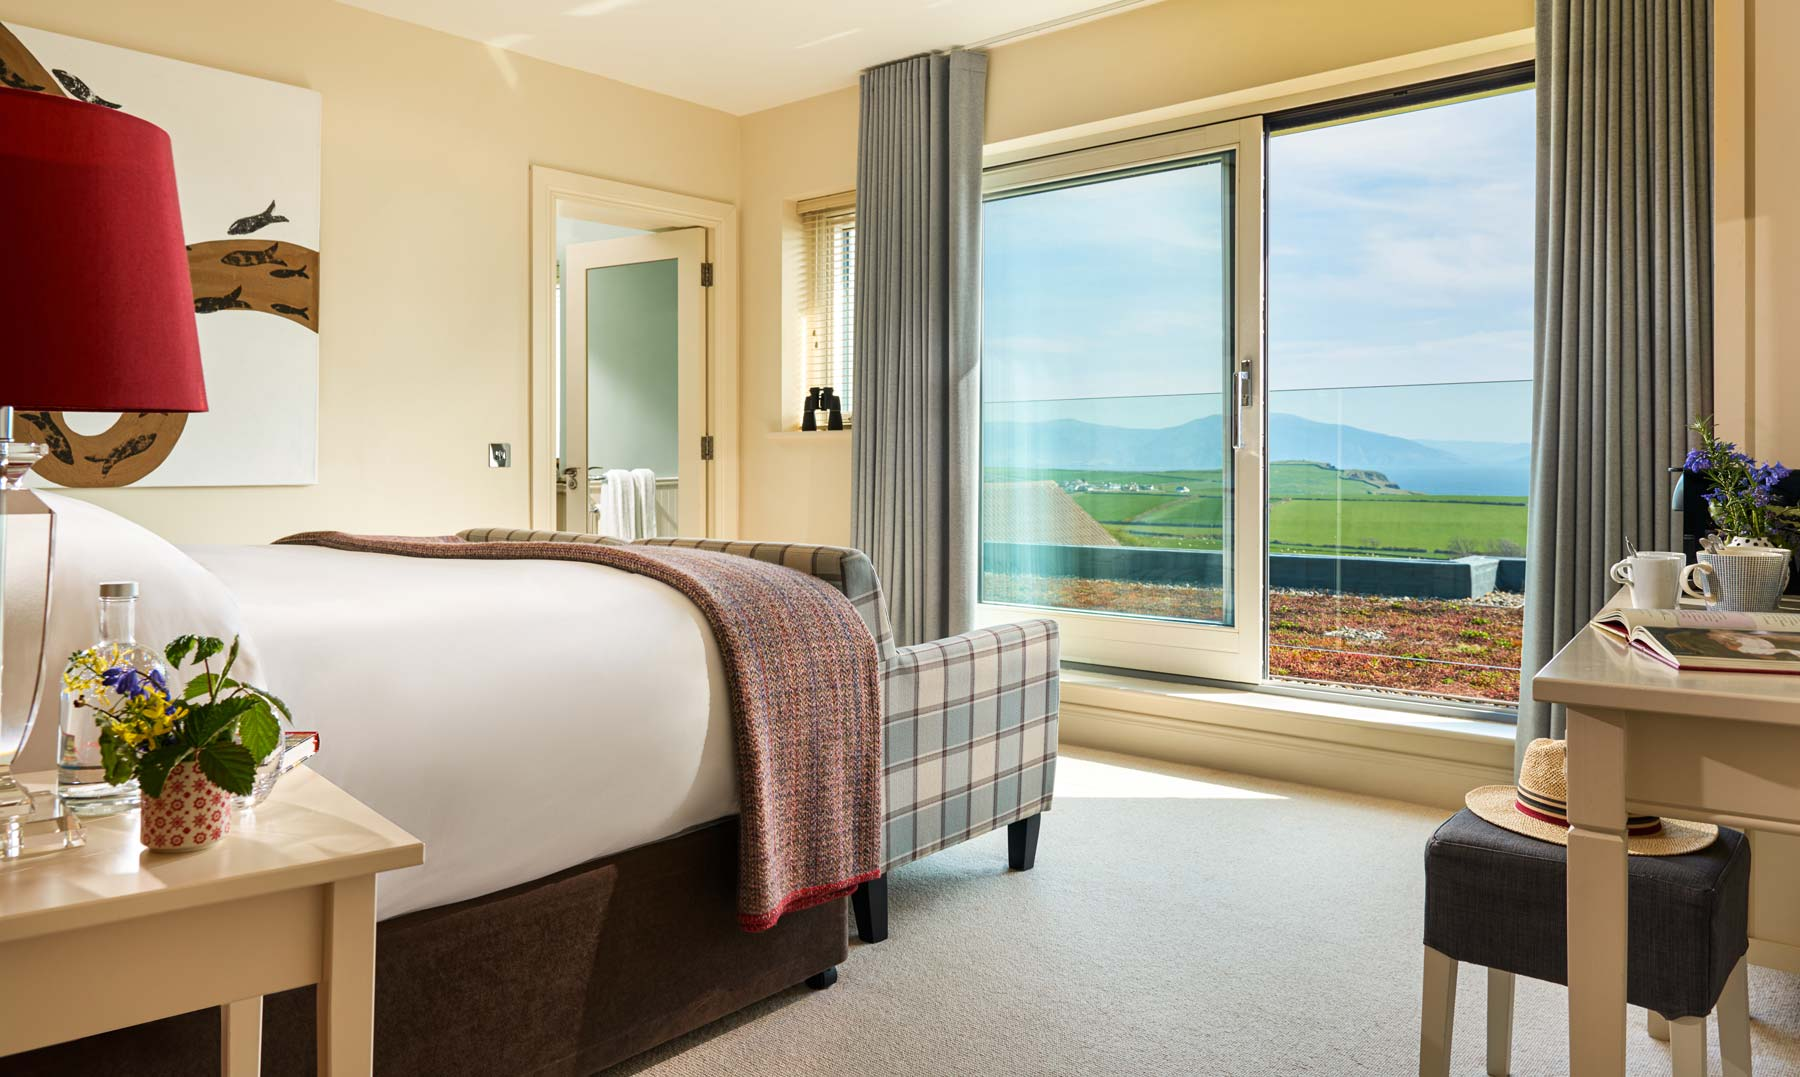 Seaview Rooms at Pax Guest House in Dingle